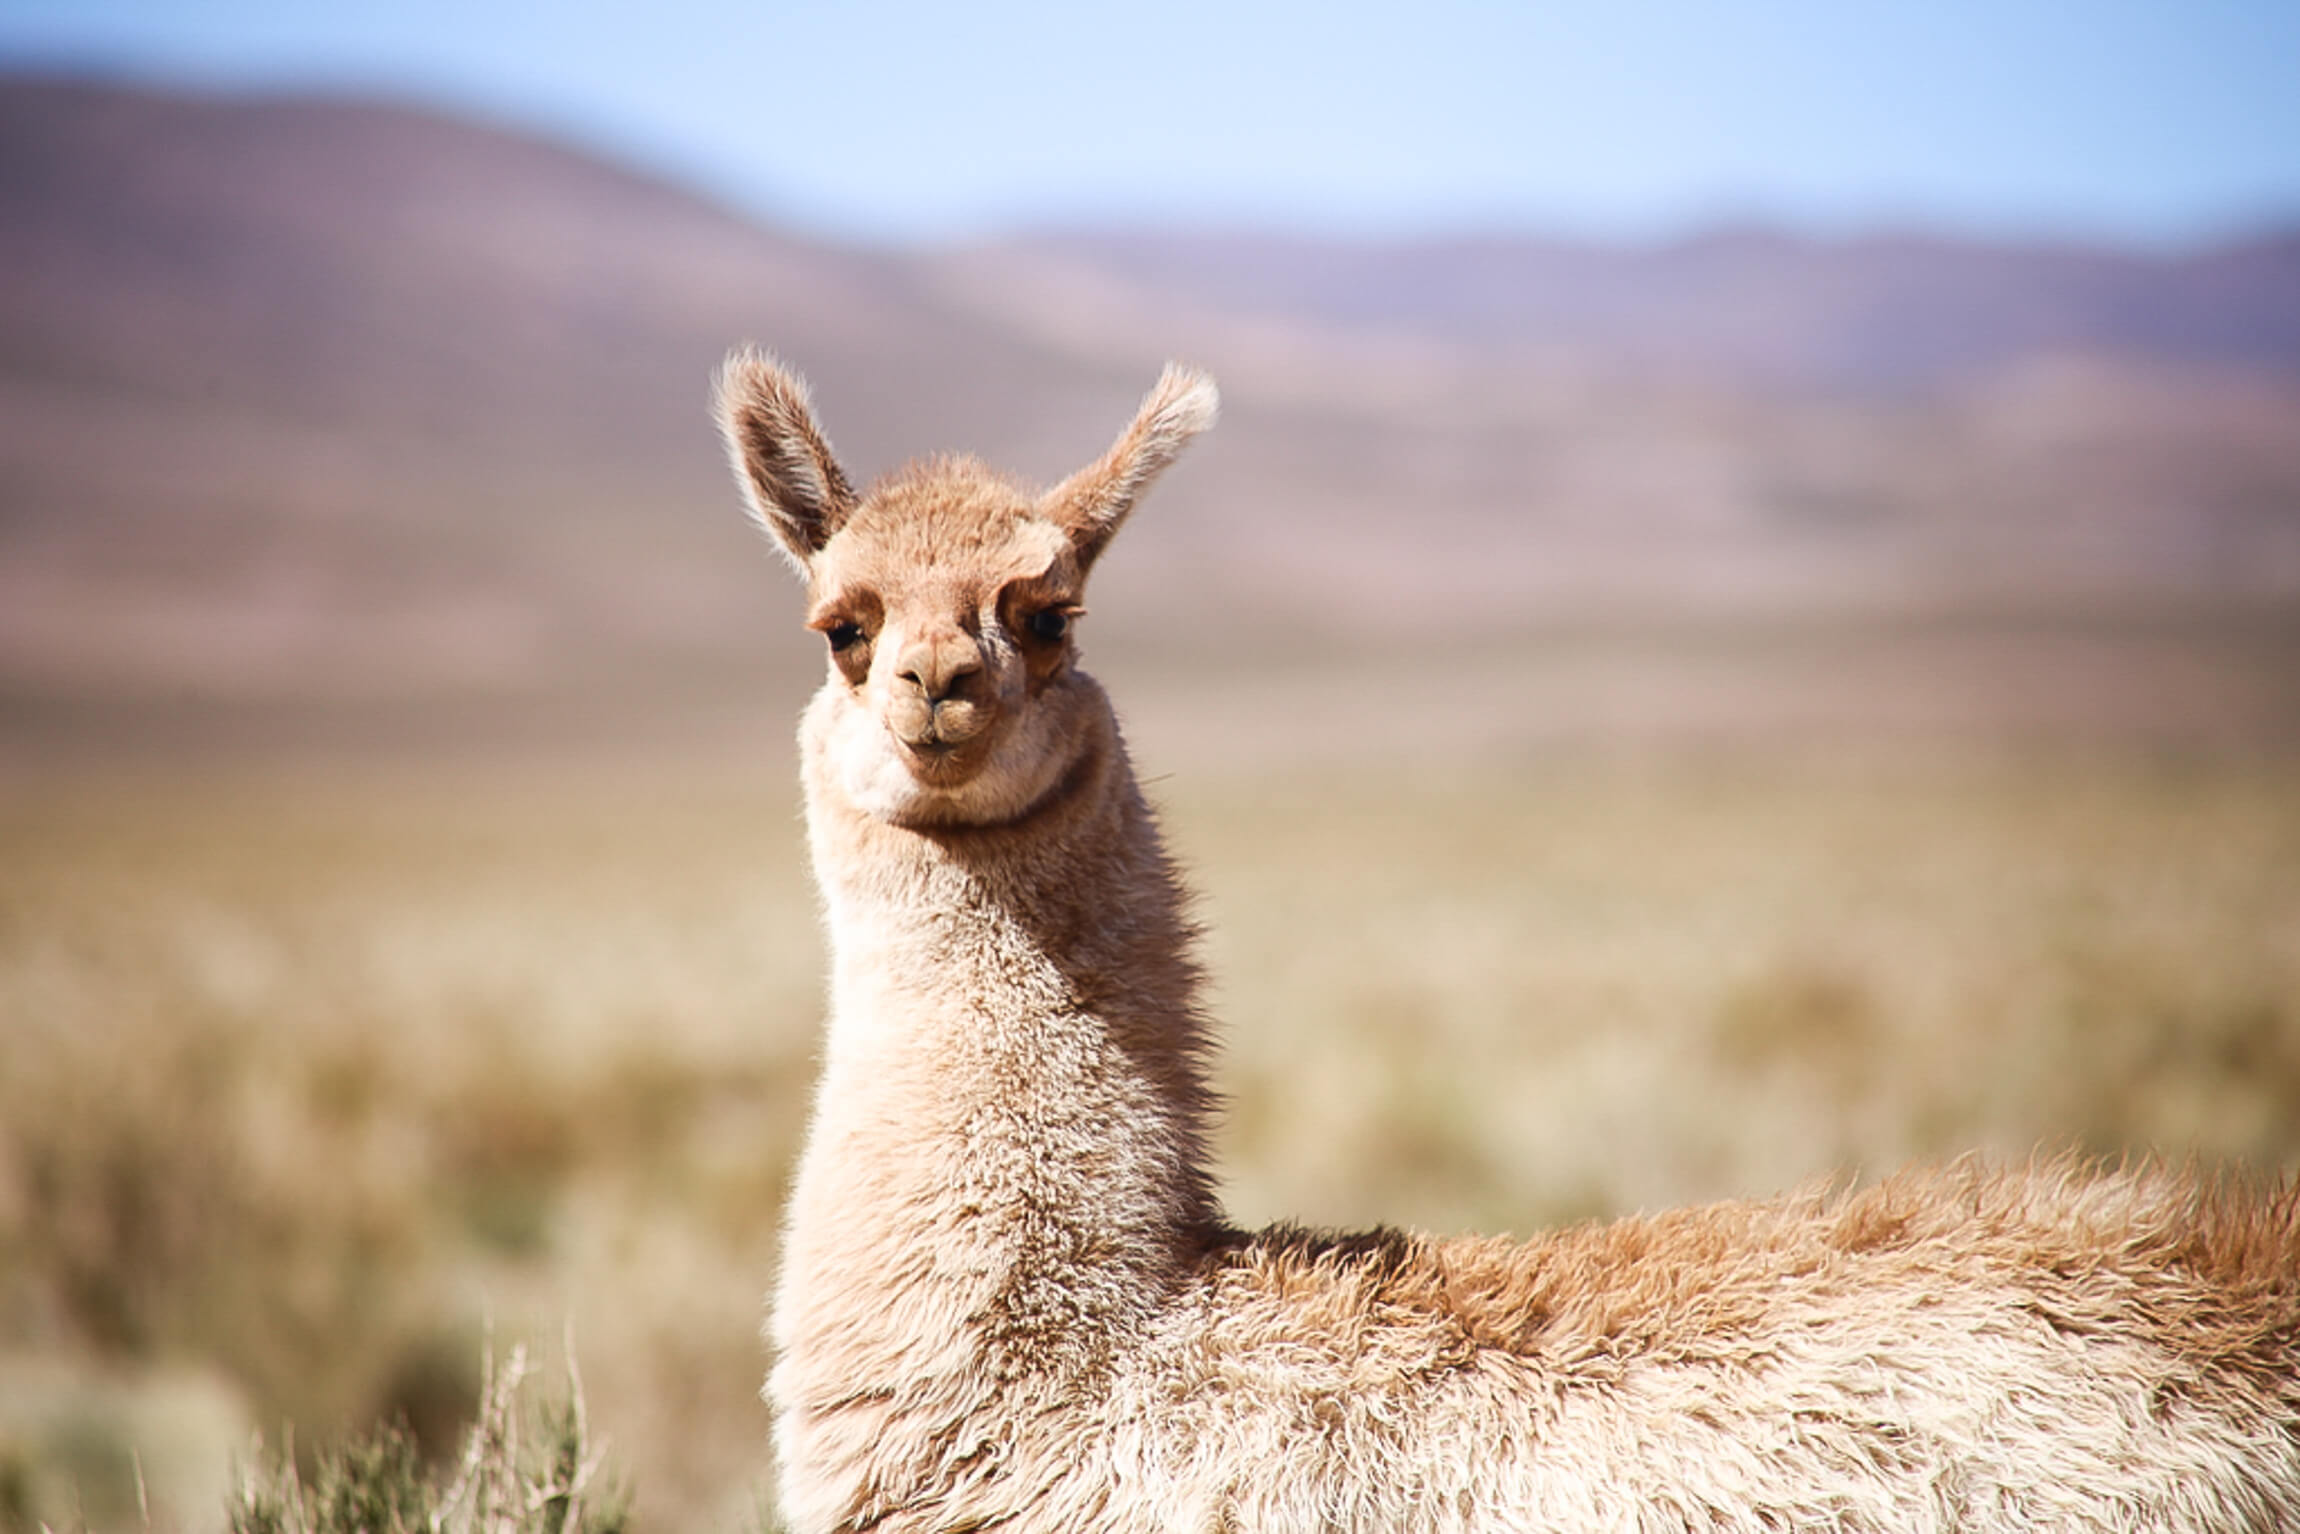 A furry beige llama stares directly into the camera in Argentina